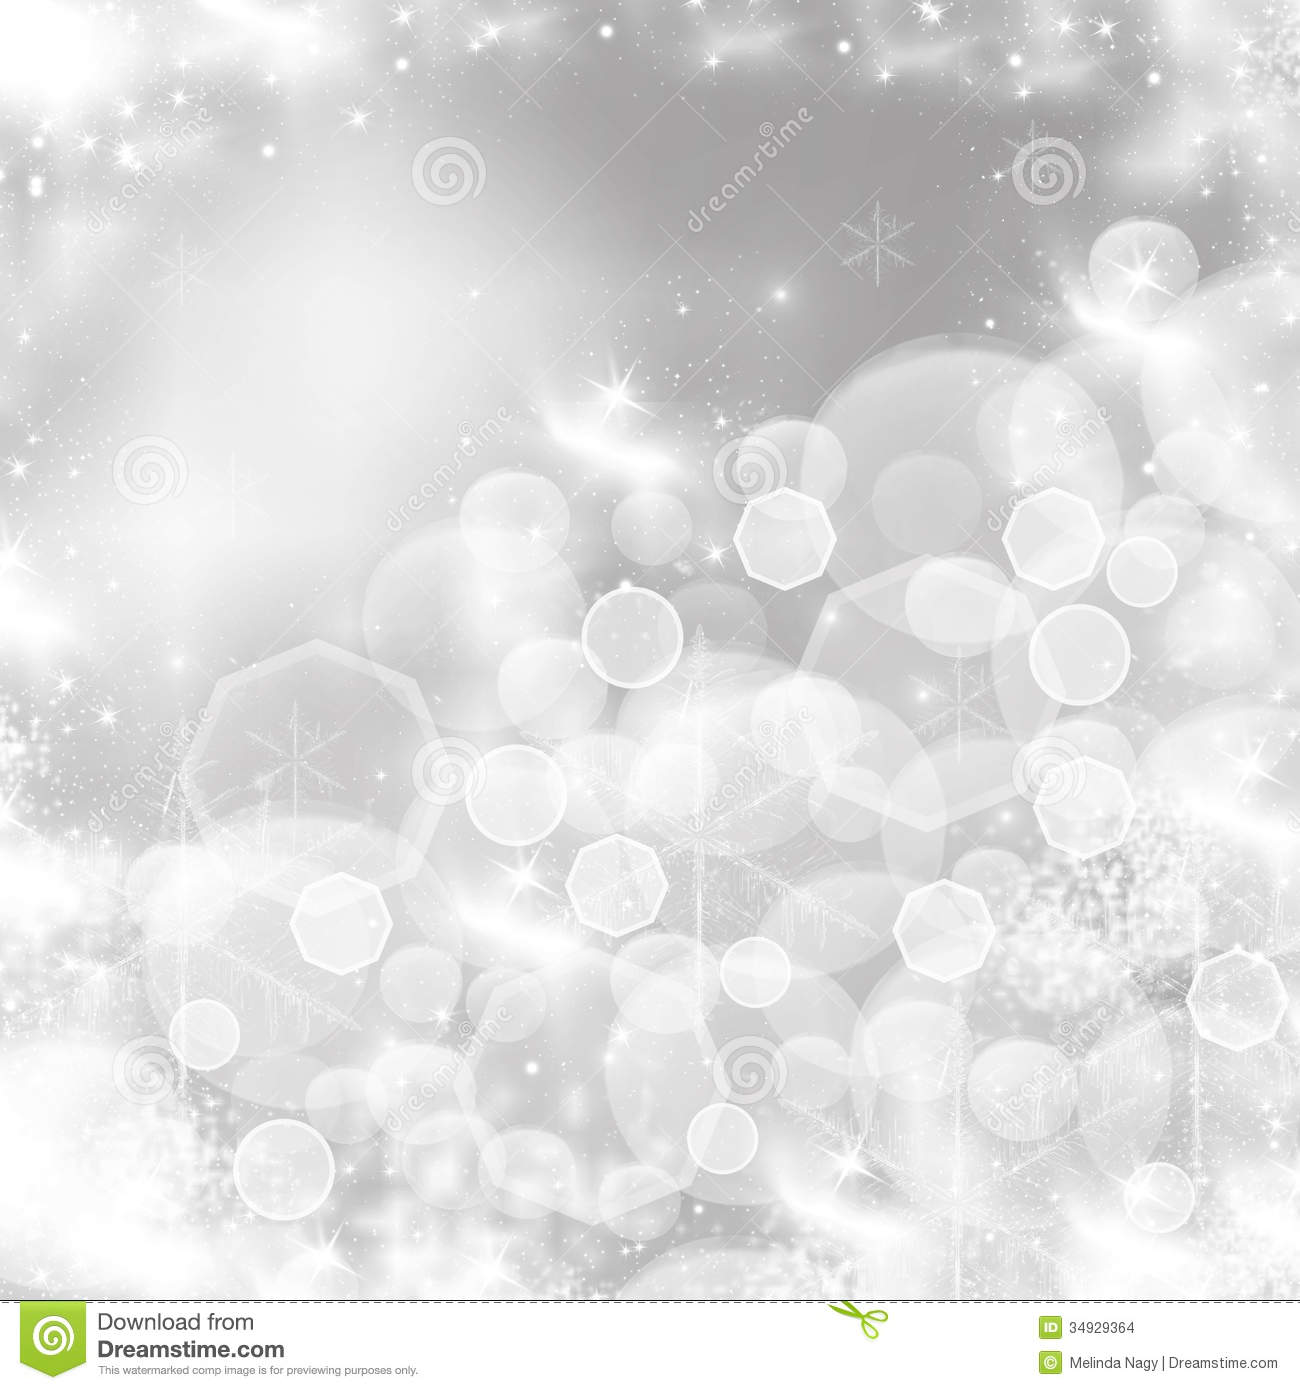 Light Christmas Background With White Snowflakes Royalty Free ...